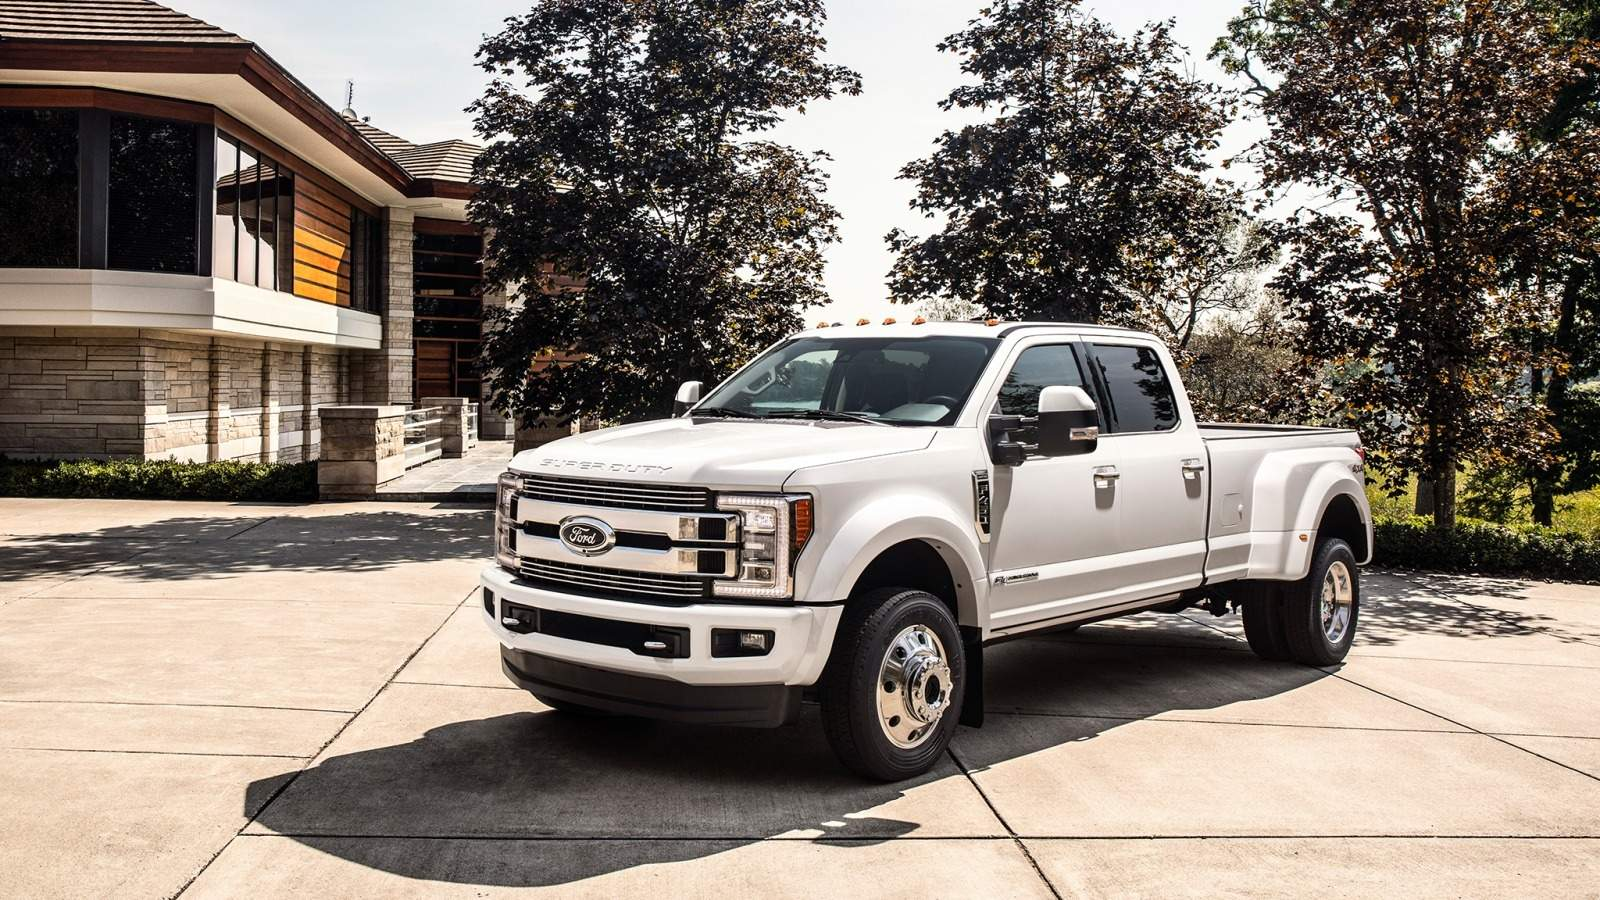 69 New 2019 Ford F450 Super Duty Interior